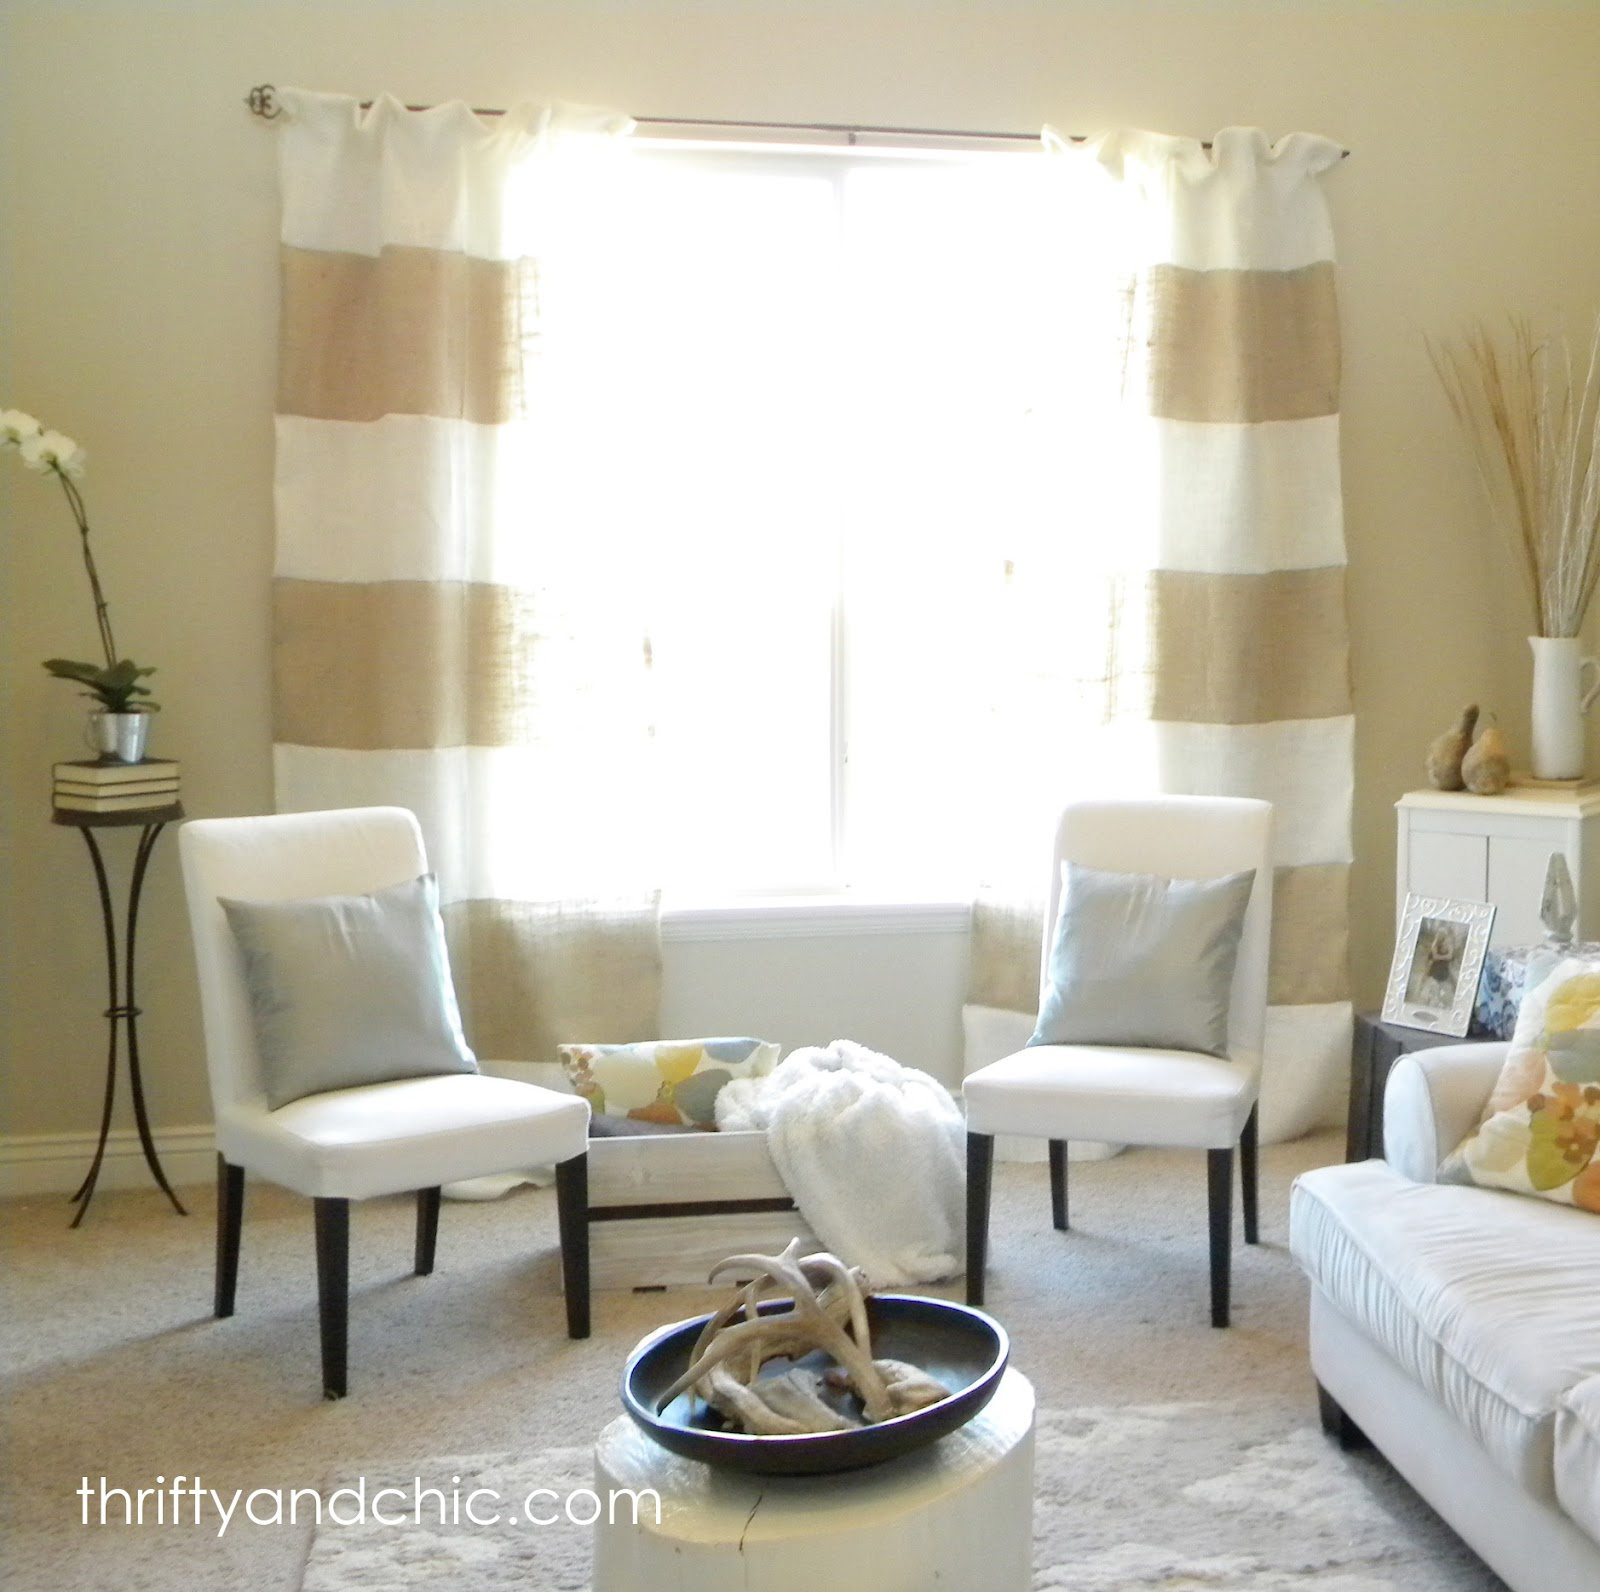 Burlap Home Decor: DIY Projects And Home Decor